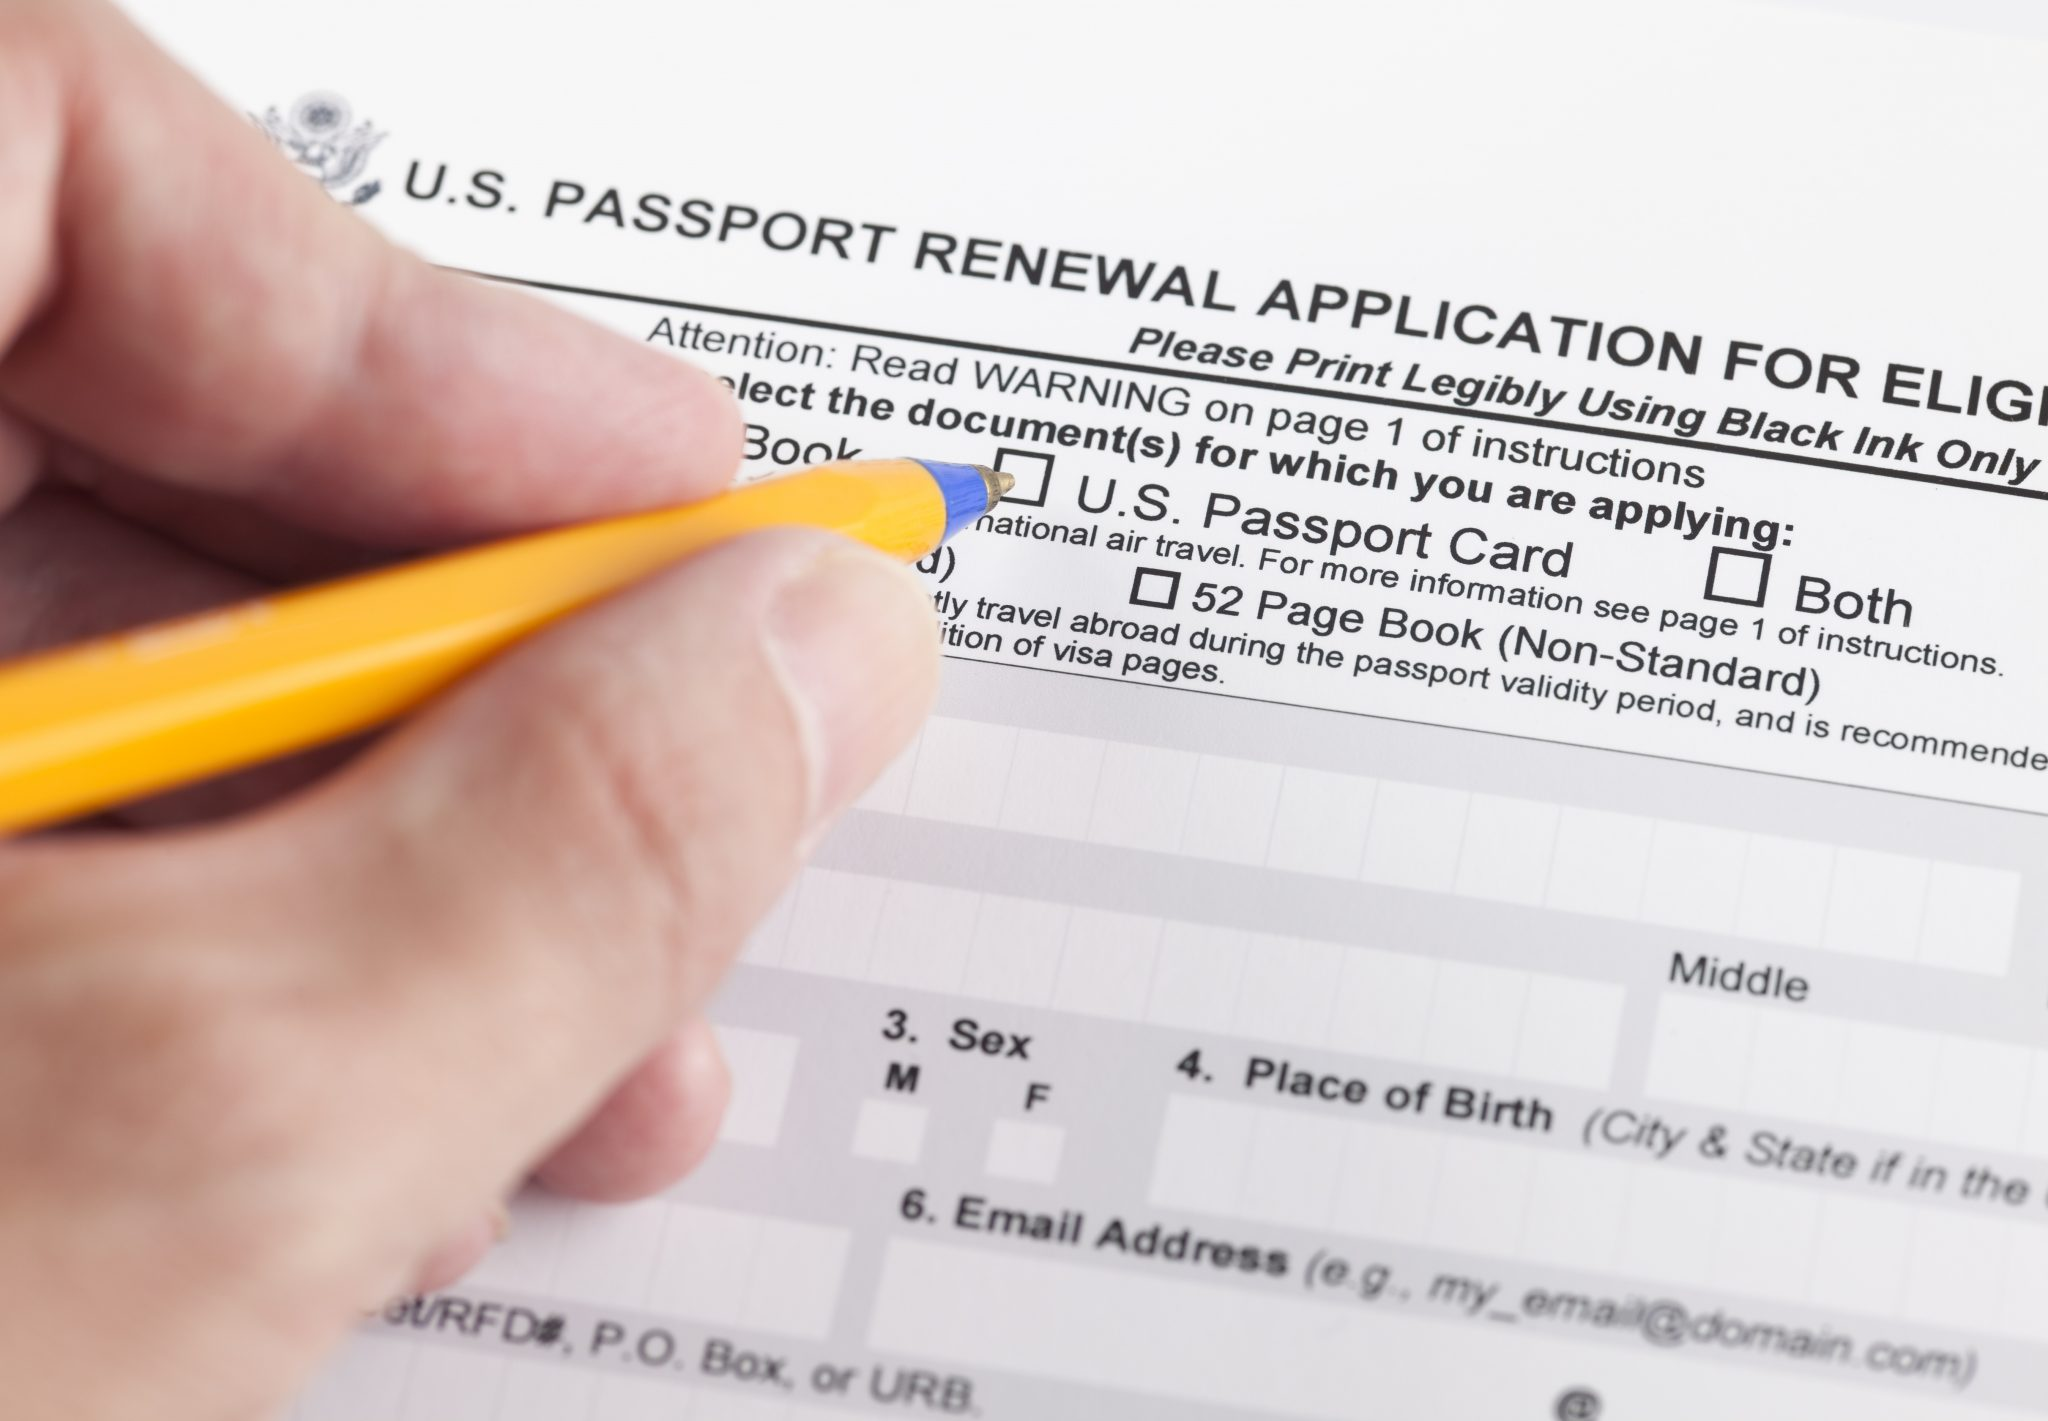 Lean How To Complete The Passport Renewal Application Form DS-82